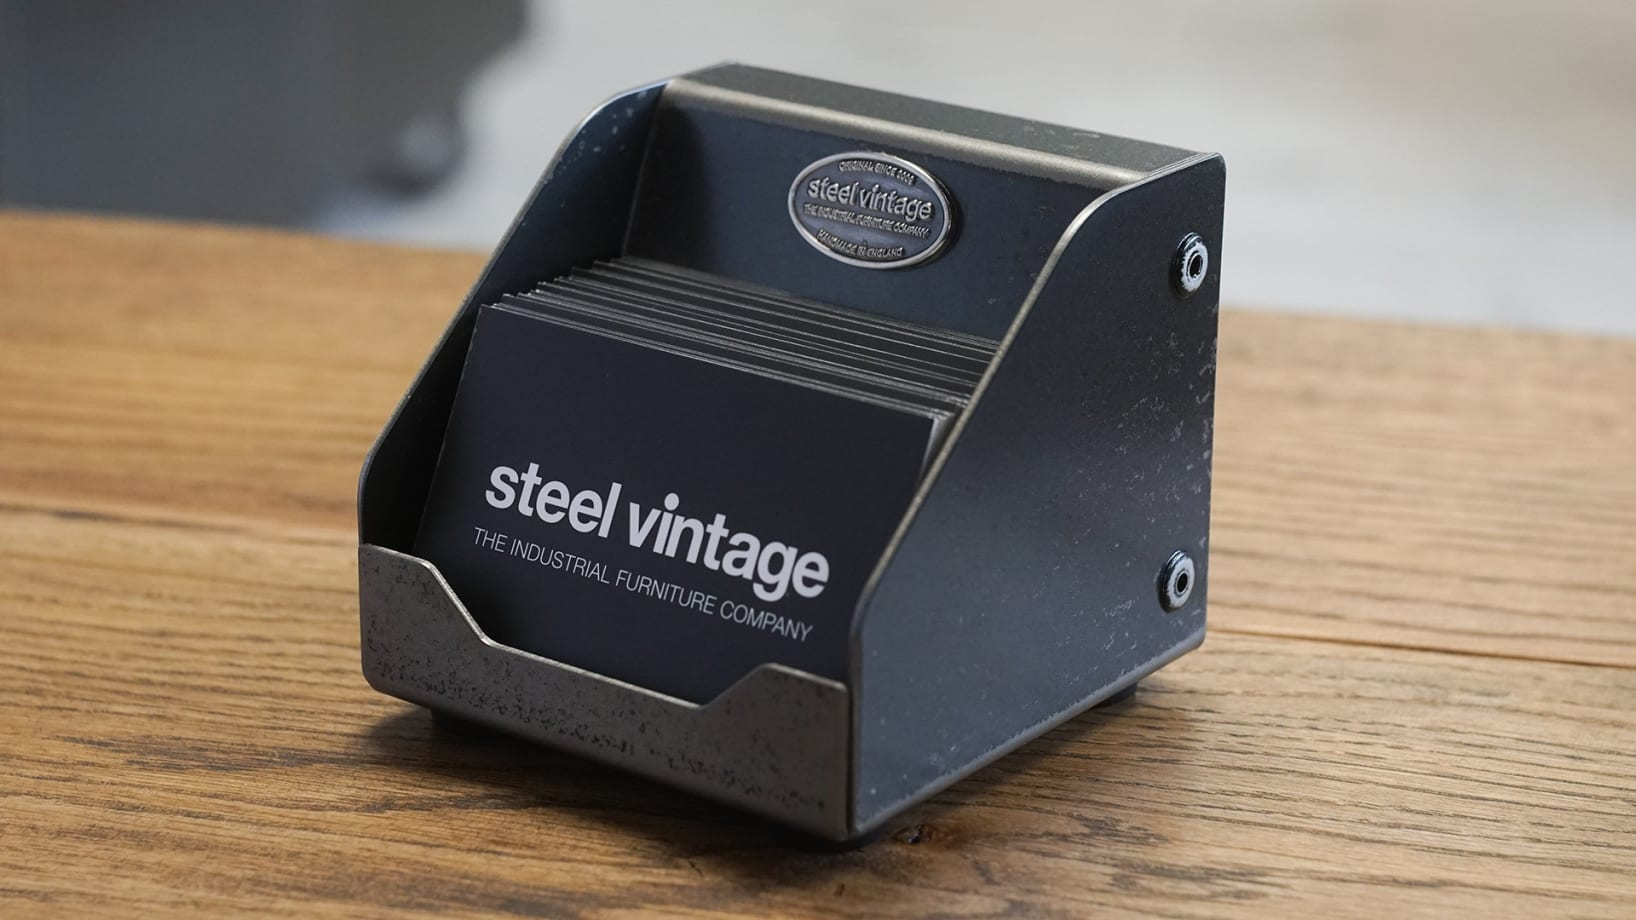 Steel Vintage business card stand